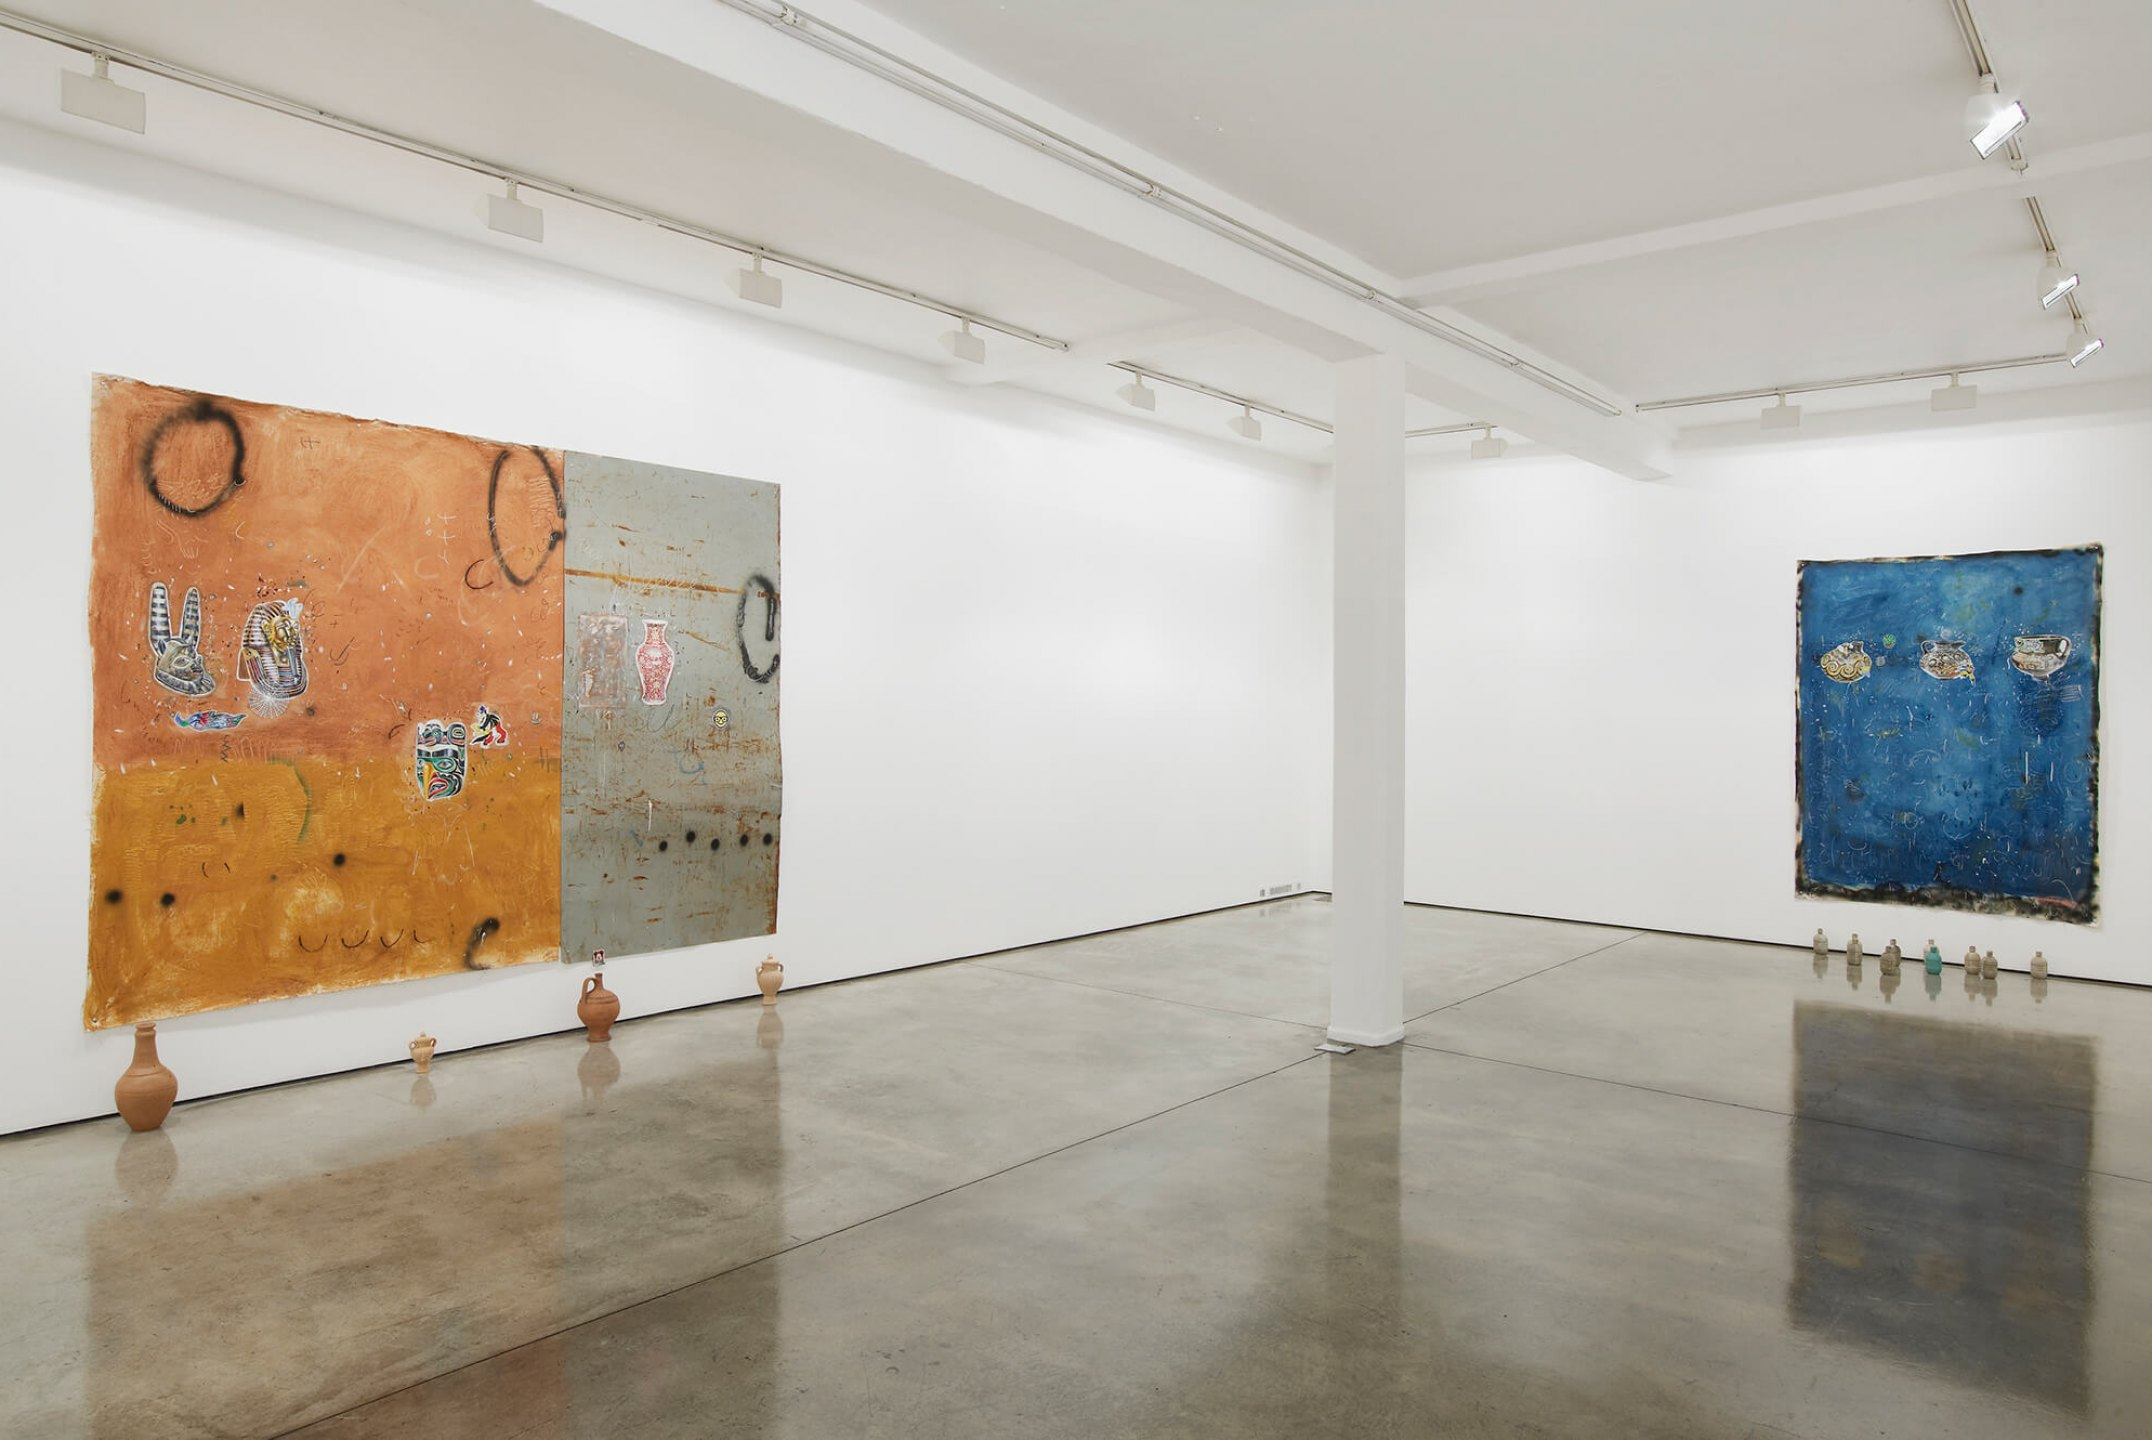 Paulo Nimer Pjota,&nbsp;<em>Synthesis between contradictory ideas and the plurality of the object as image II,</em> Maureen Paley, London, 2016 - Mendes Wood DM